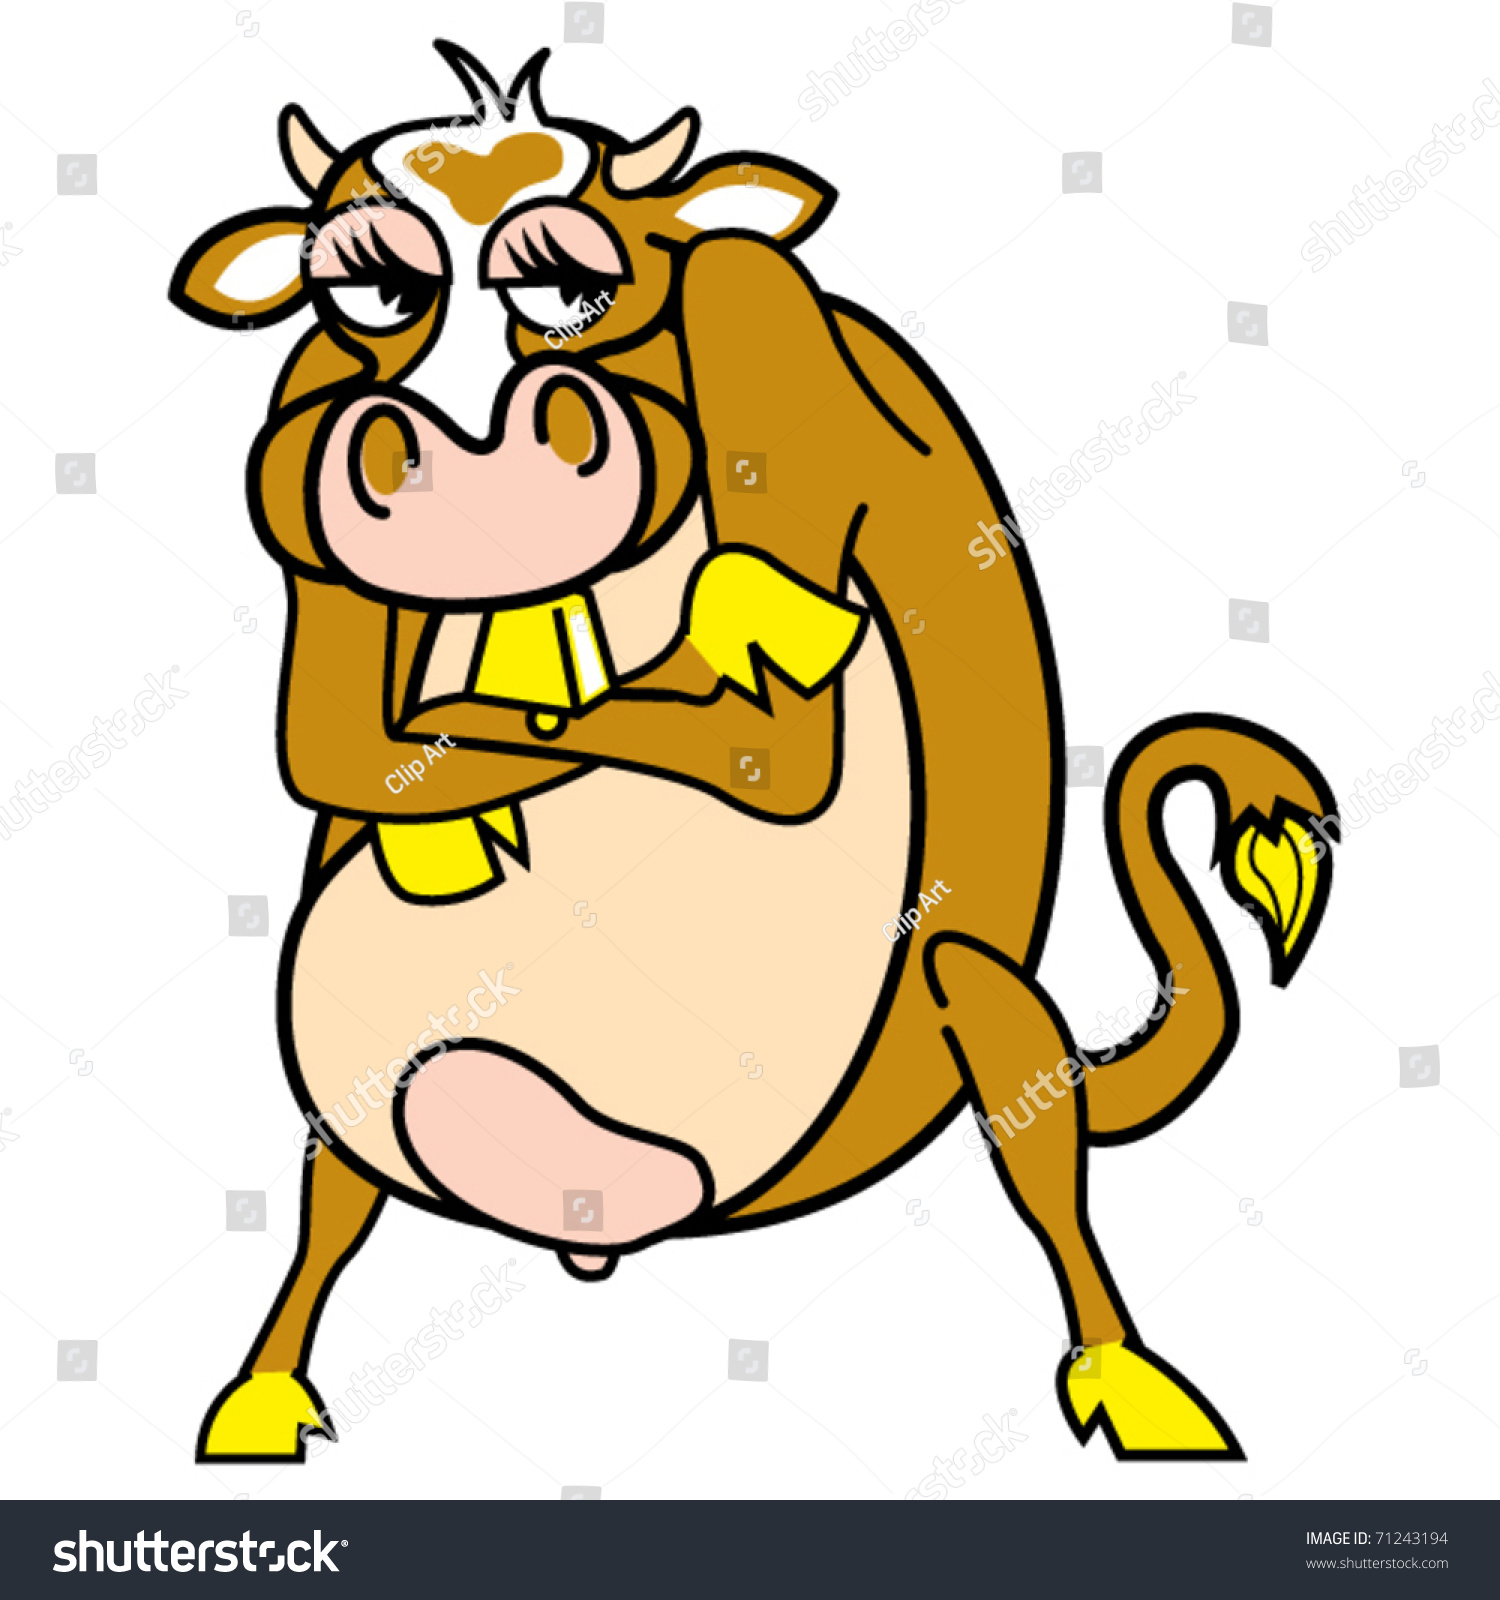 funny cute cartoon cow mad angry stock vector 71243194